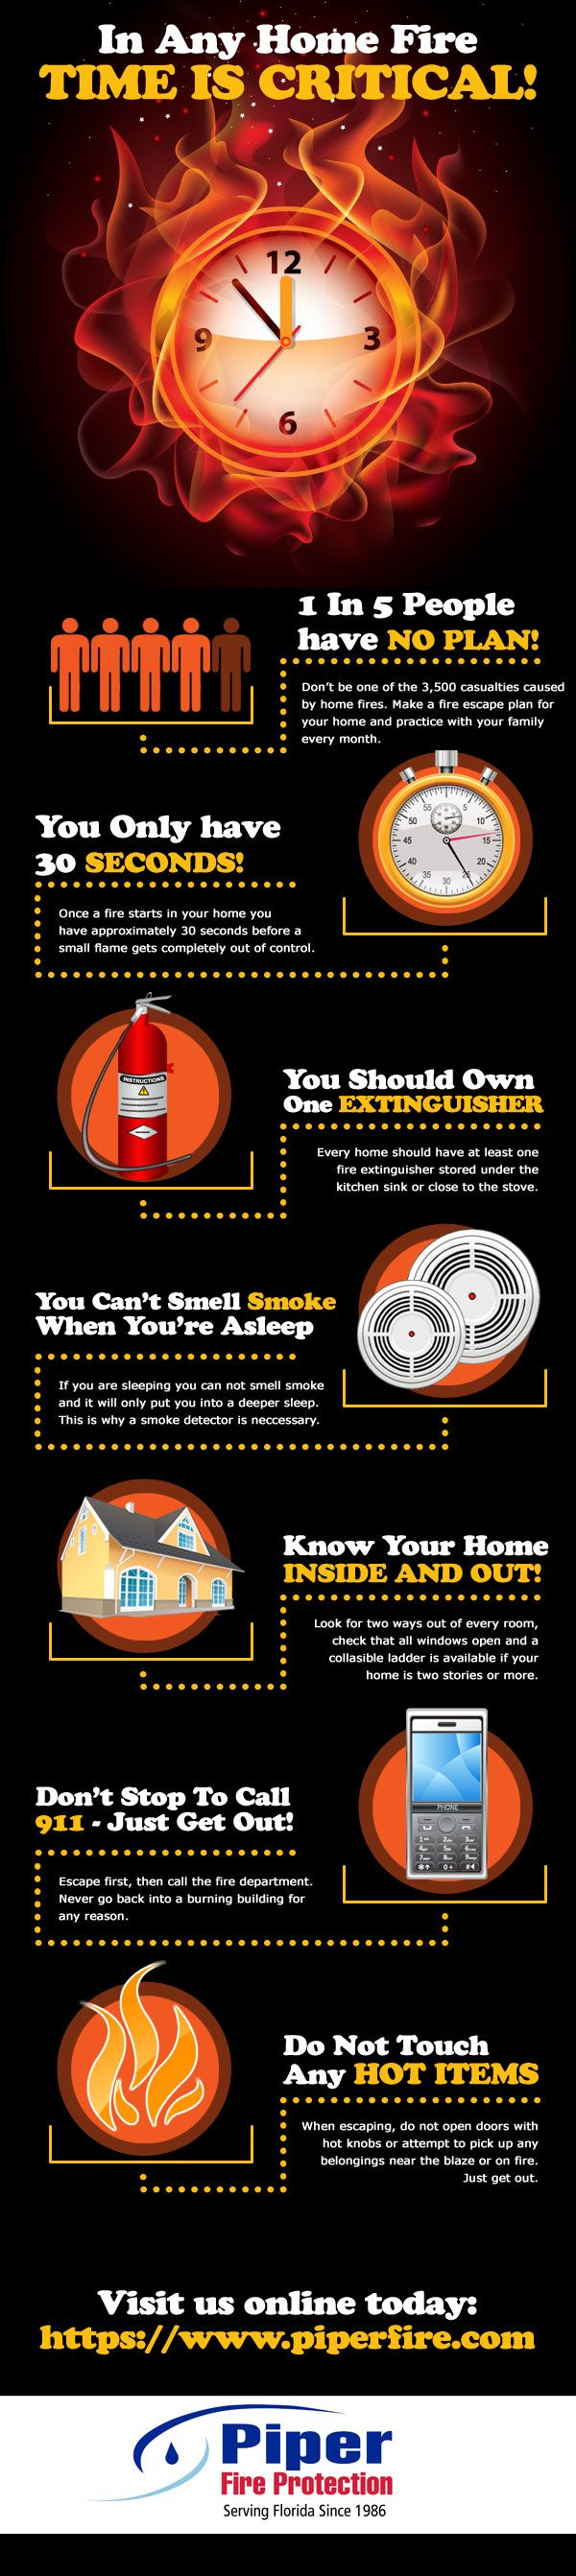 In Any Home Fire Timing Is Critical Fire Safety Fire Safety Tips Fire Prevention